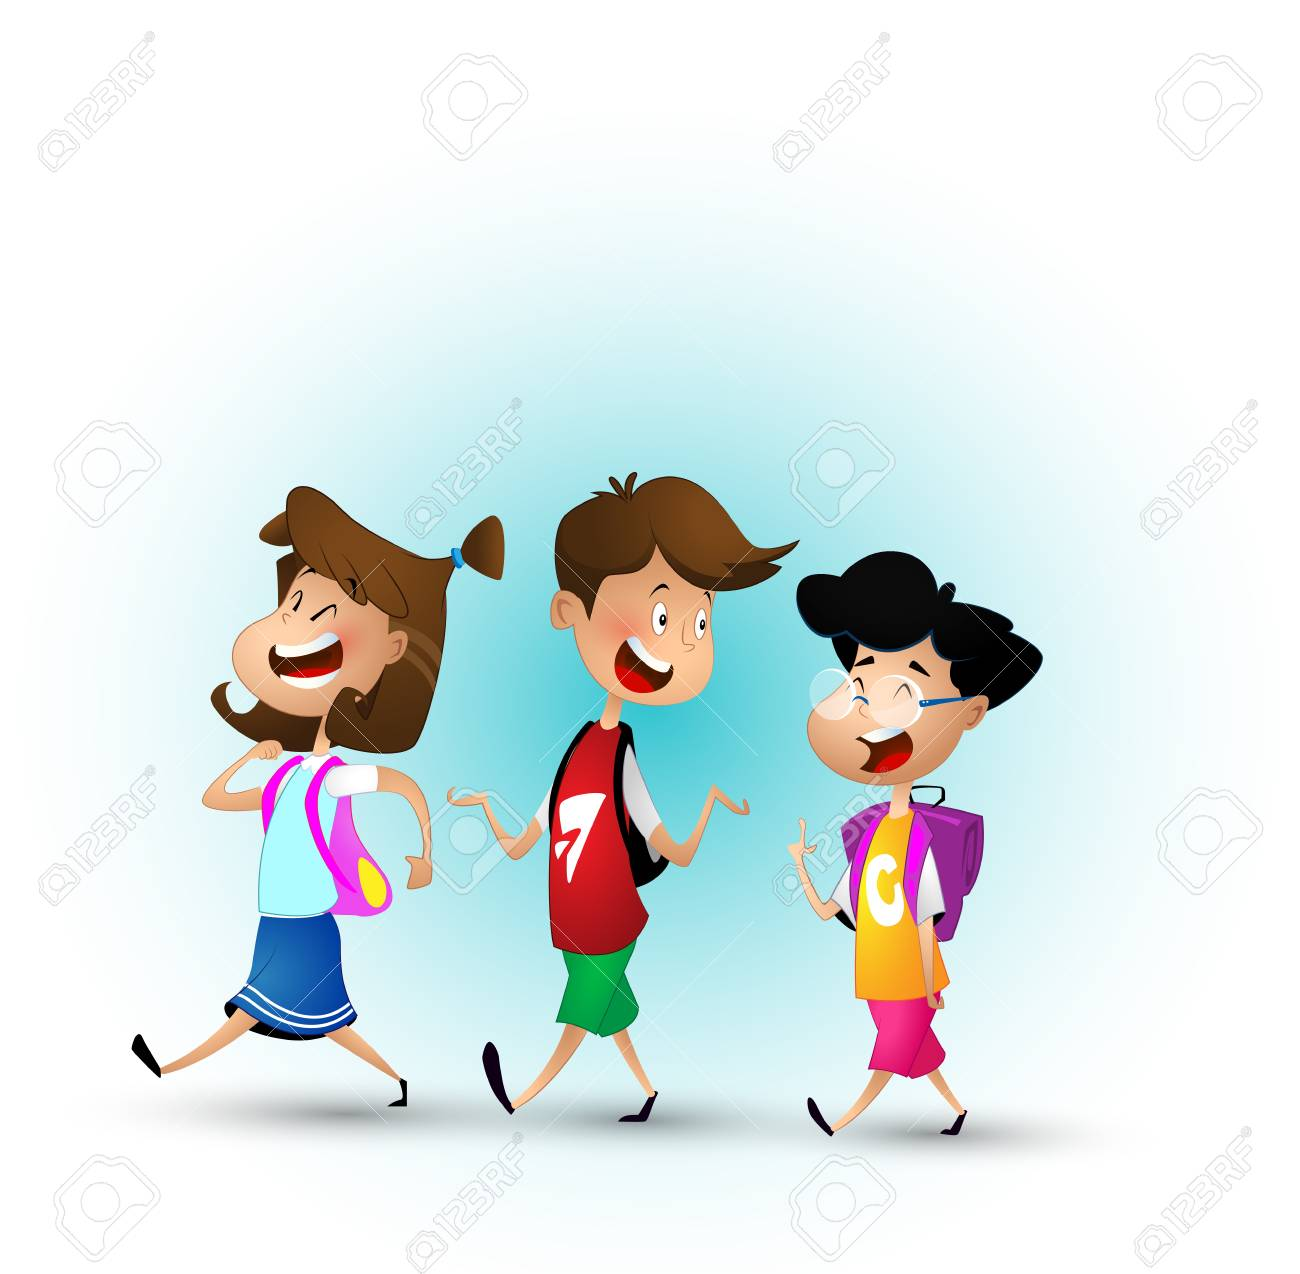 Group of kids going to school together. - 97737467